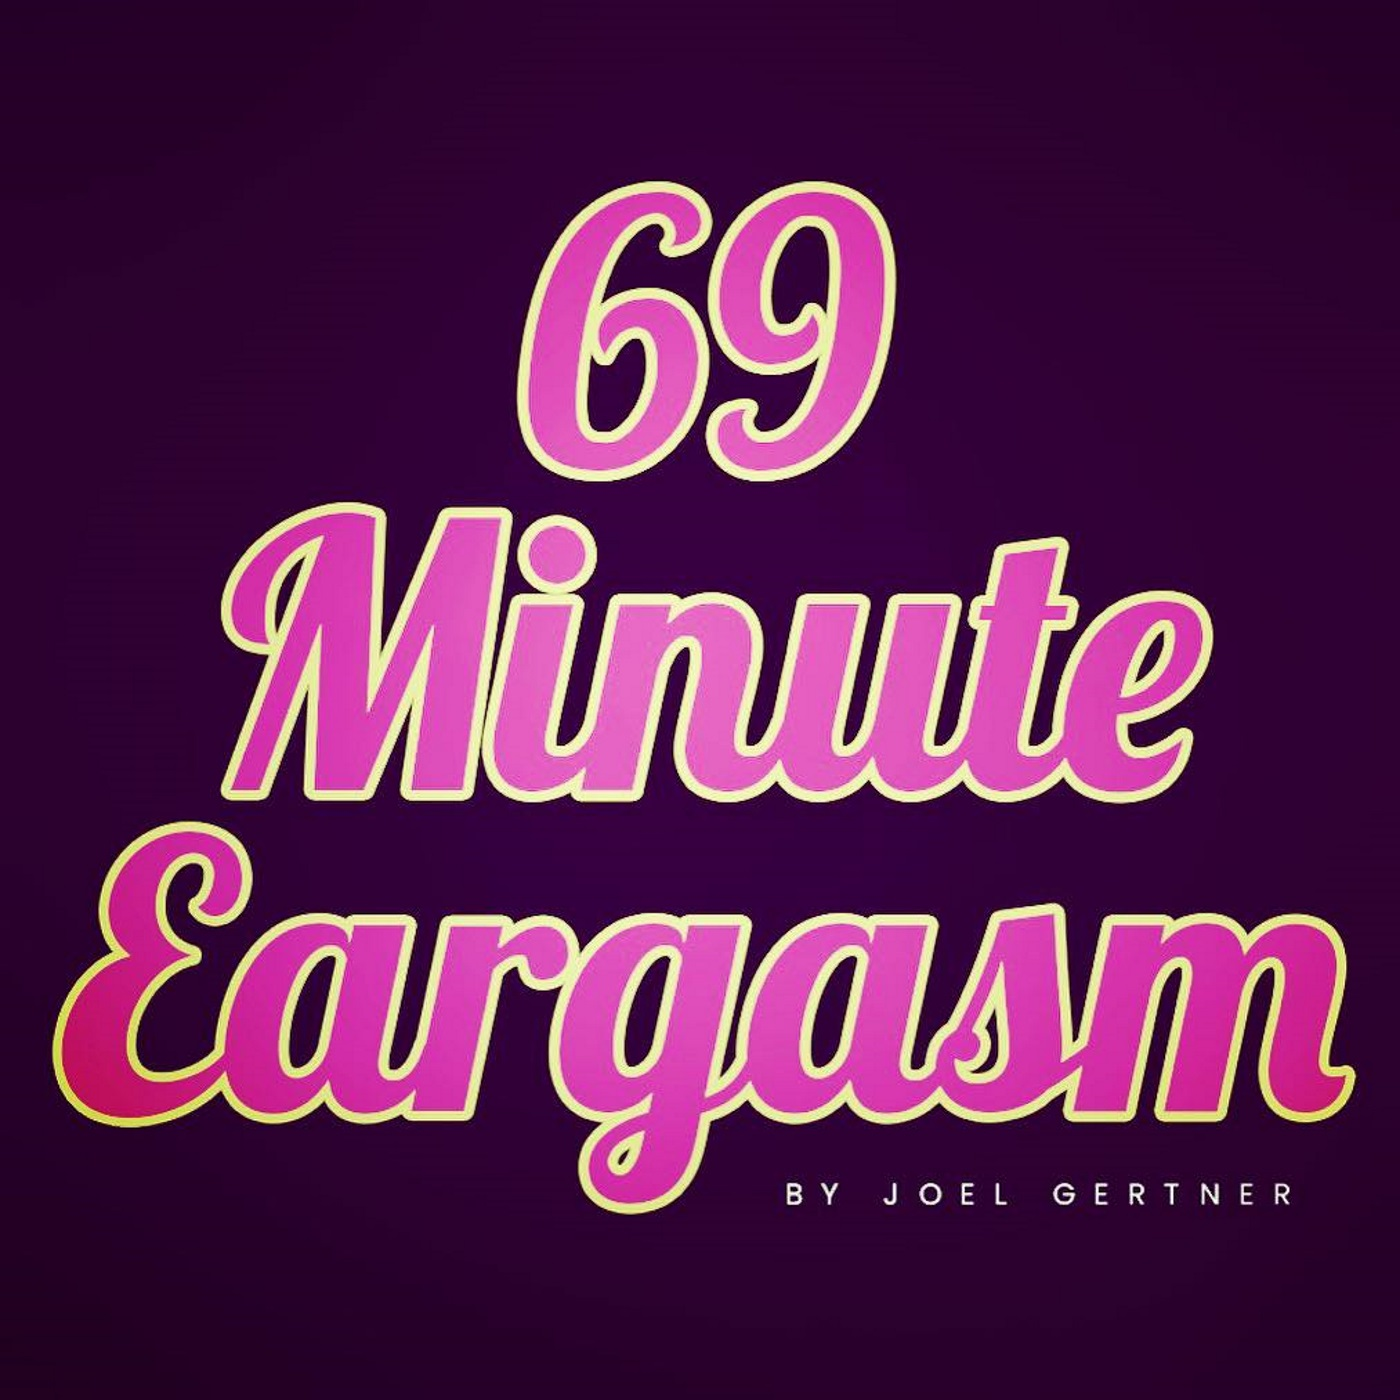 The 69 Minute Eargasm with Joel Gertner